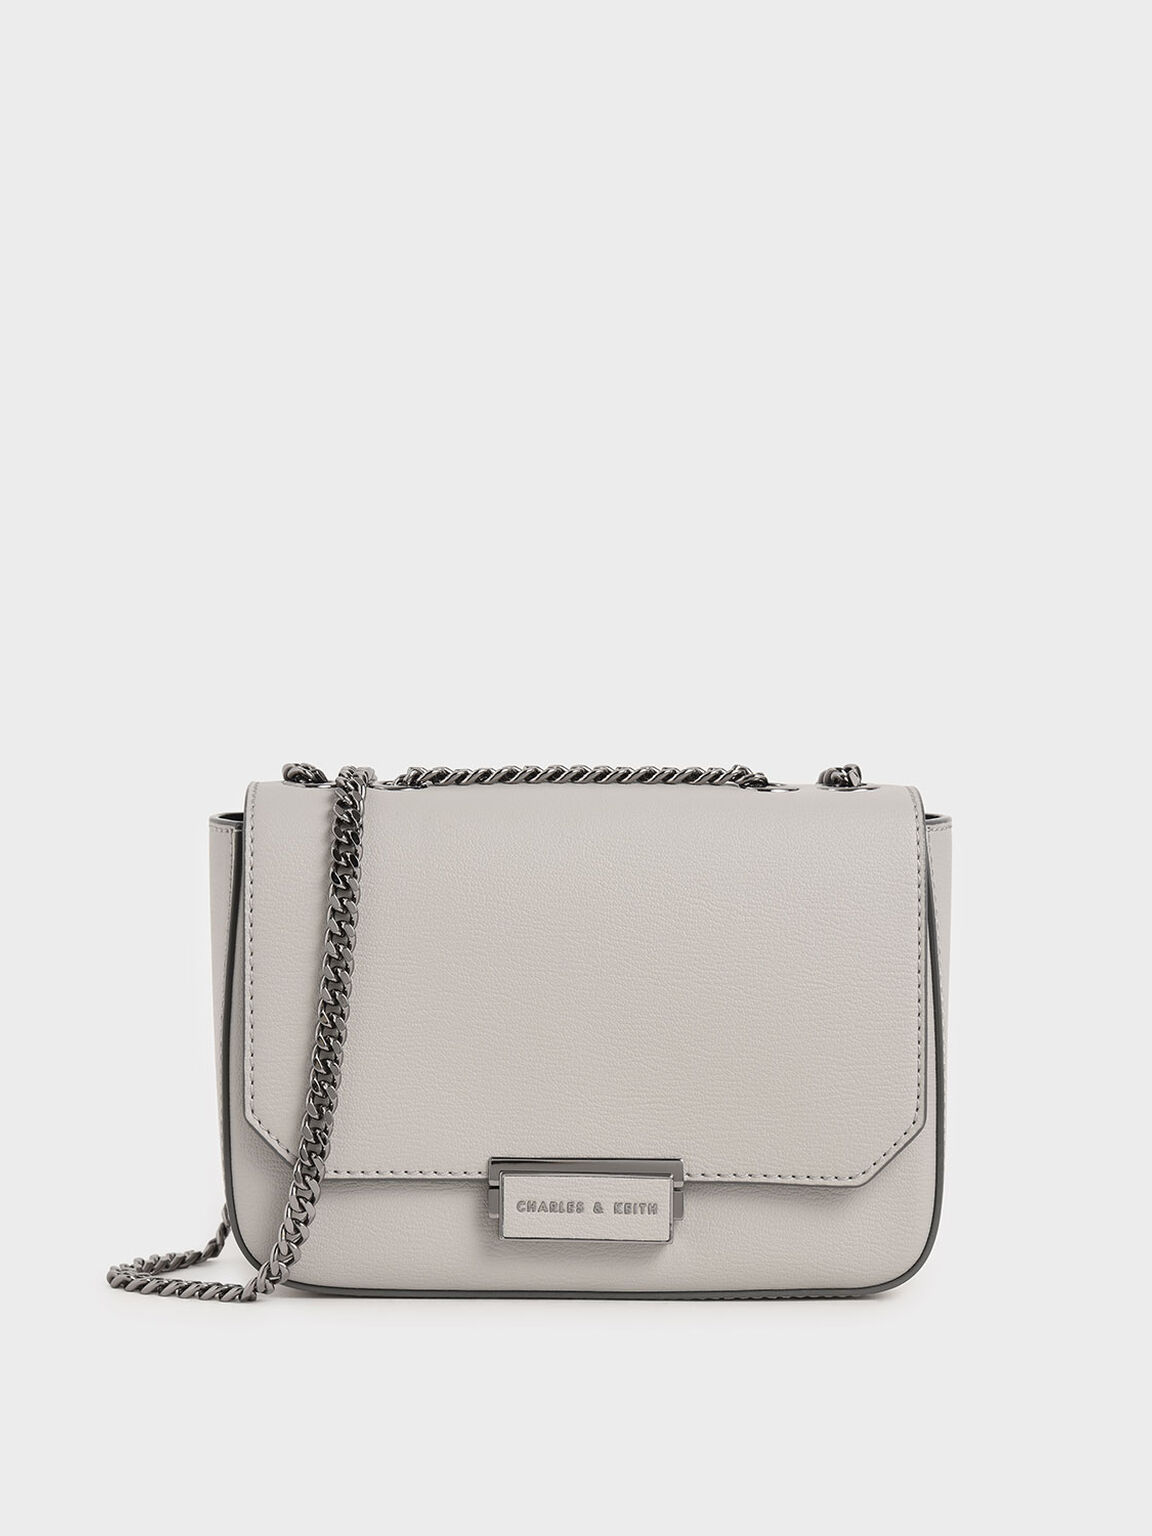 Double Chain Link Crossbody Bag, Grey, hi-res